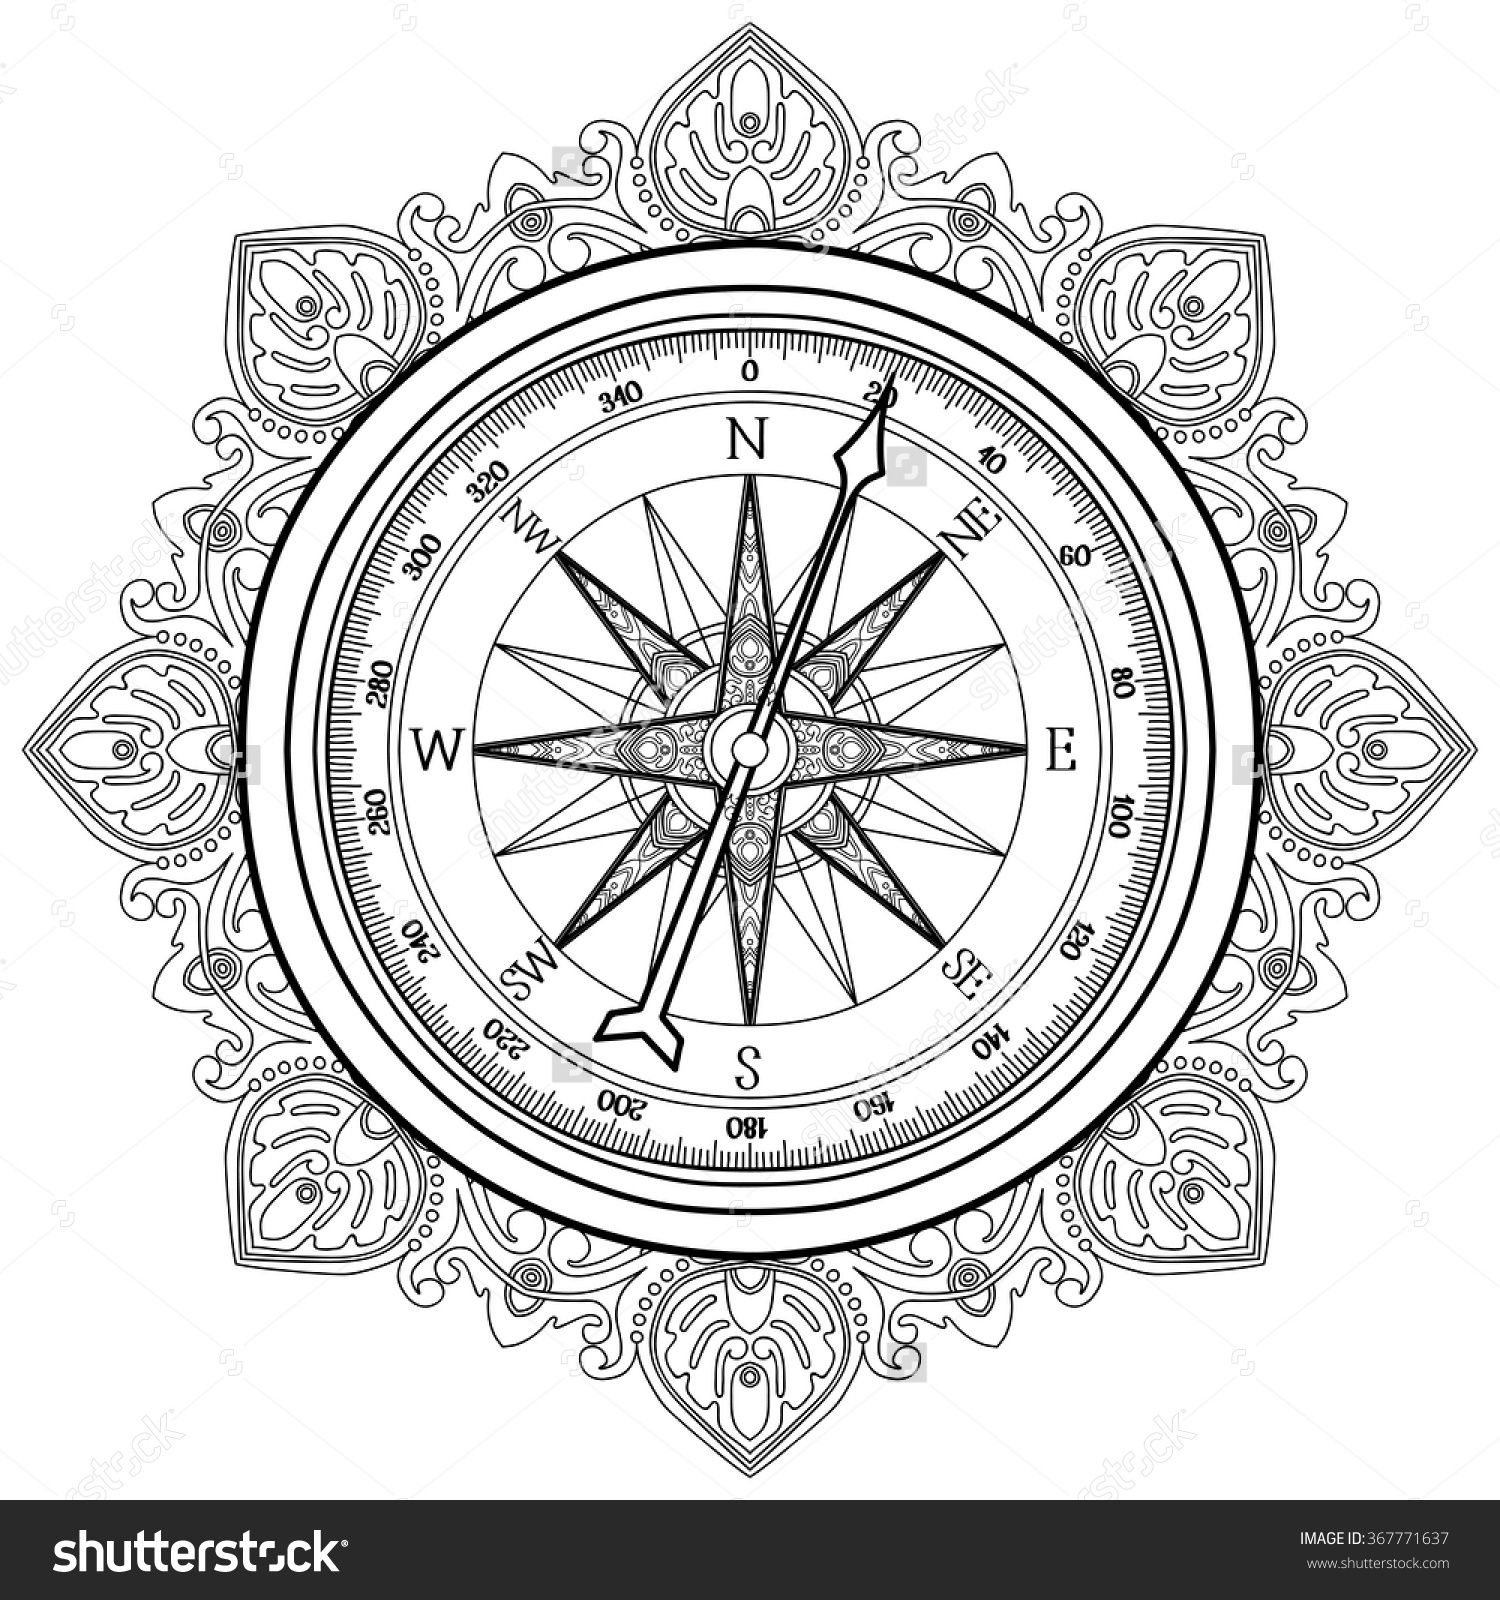 Image Result For Adult Coloring Compass Wind Rose Compass Art